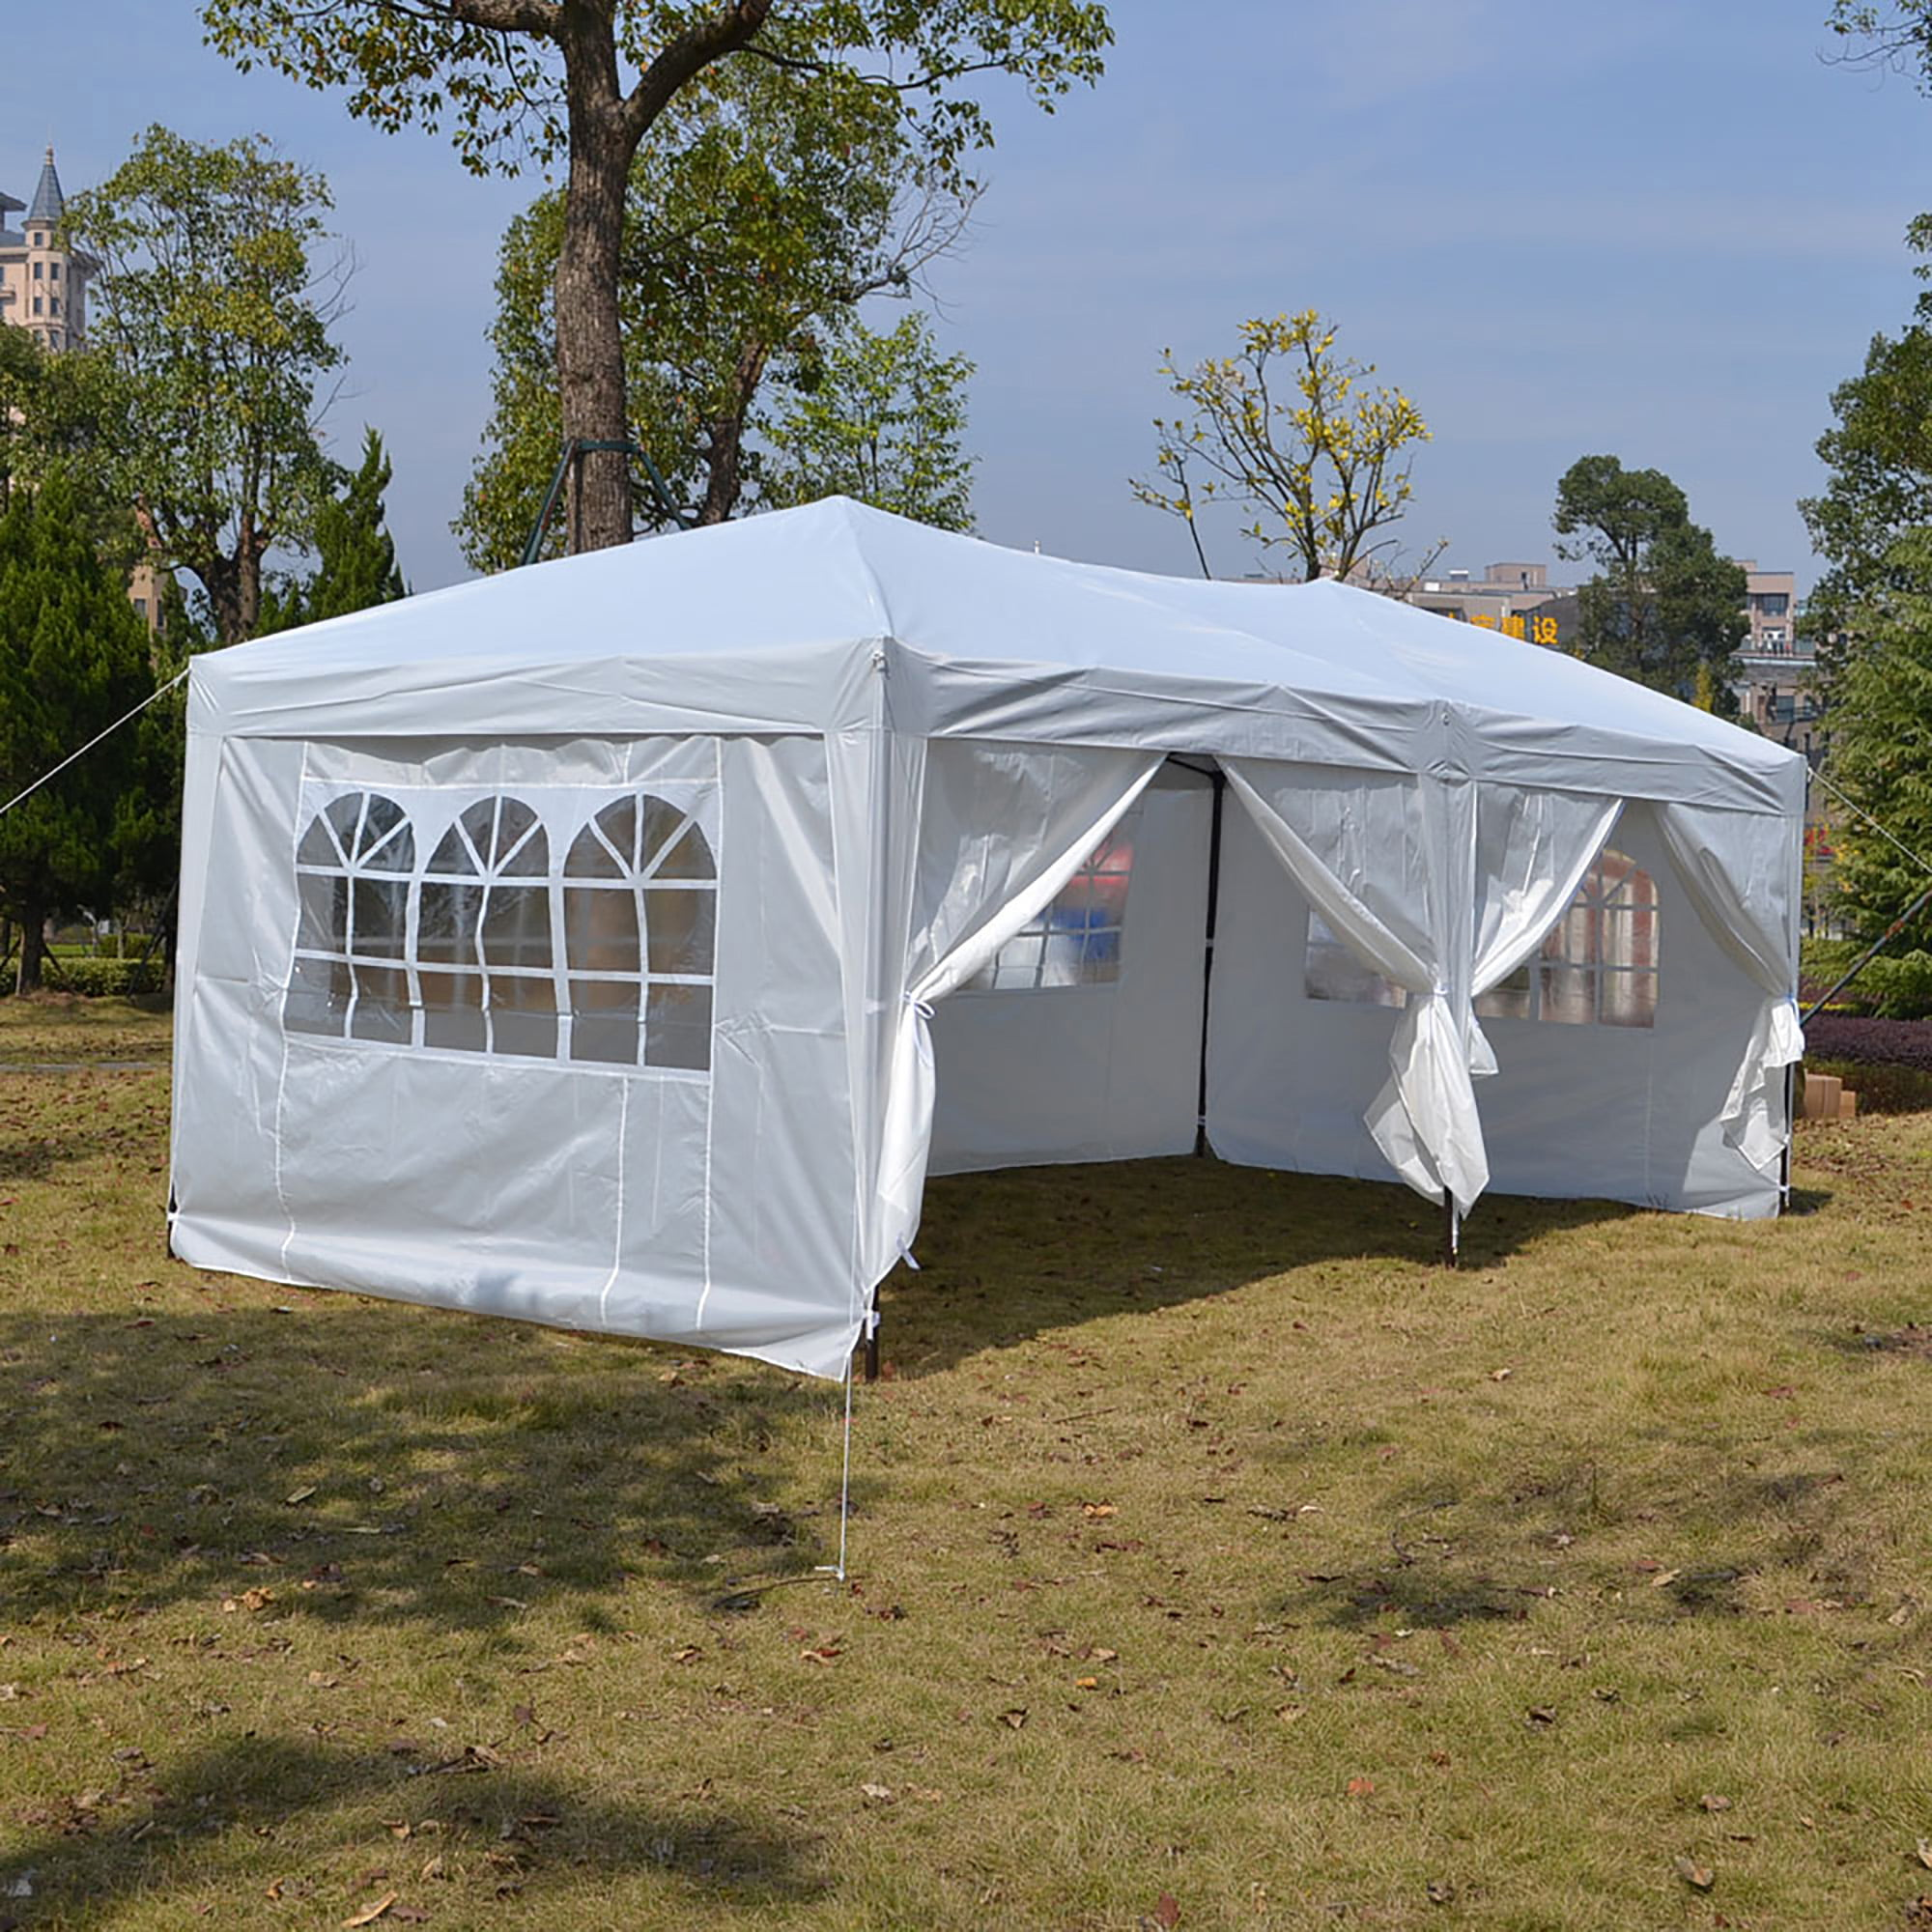 Portable Tents and Canopies, WRCH3102 Canopy Tents for ...